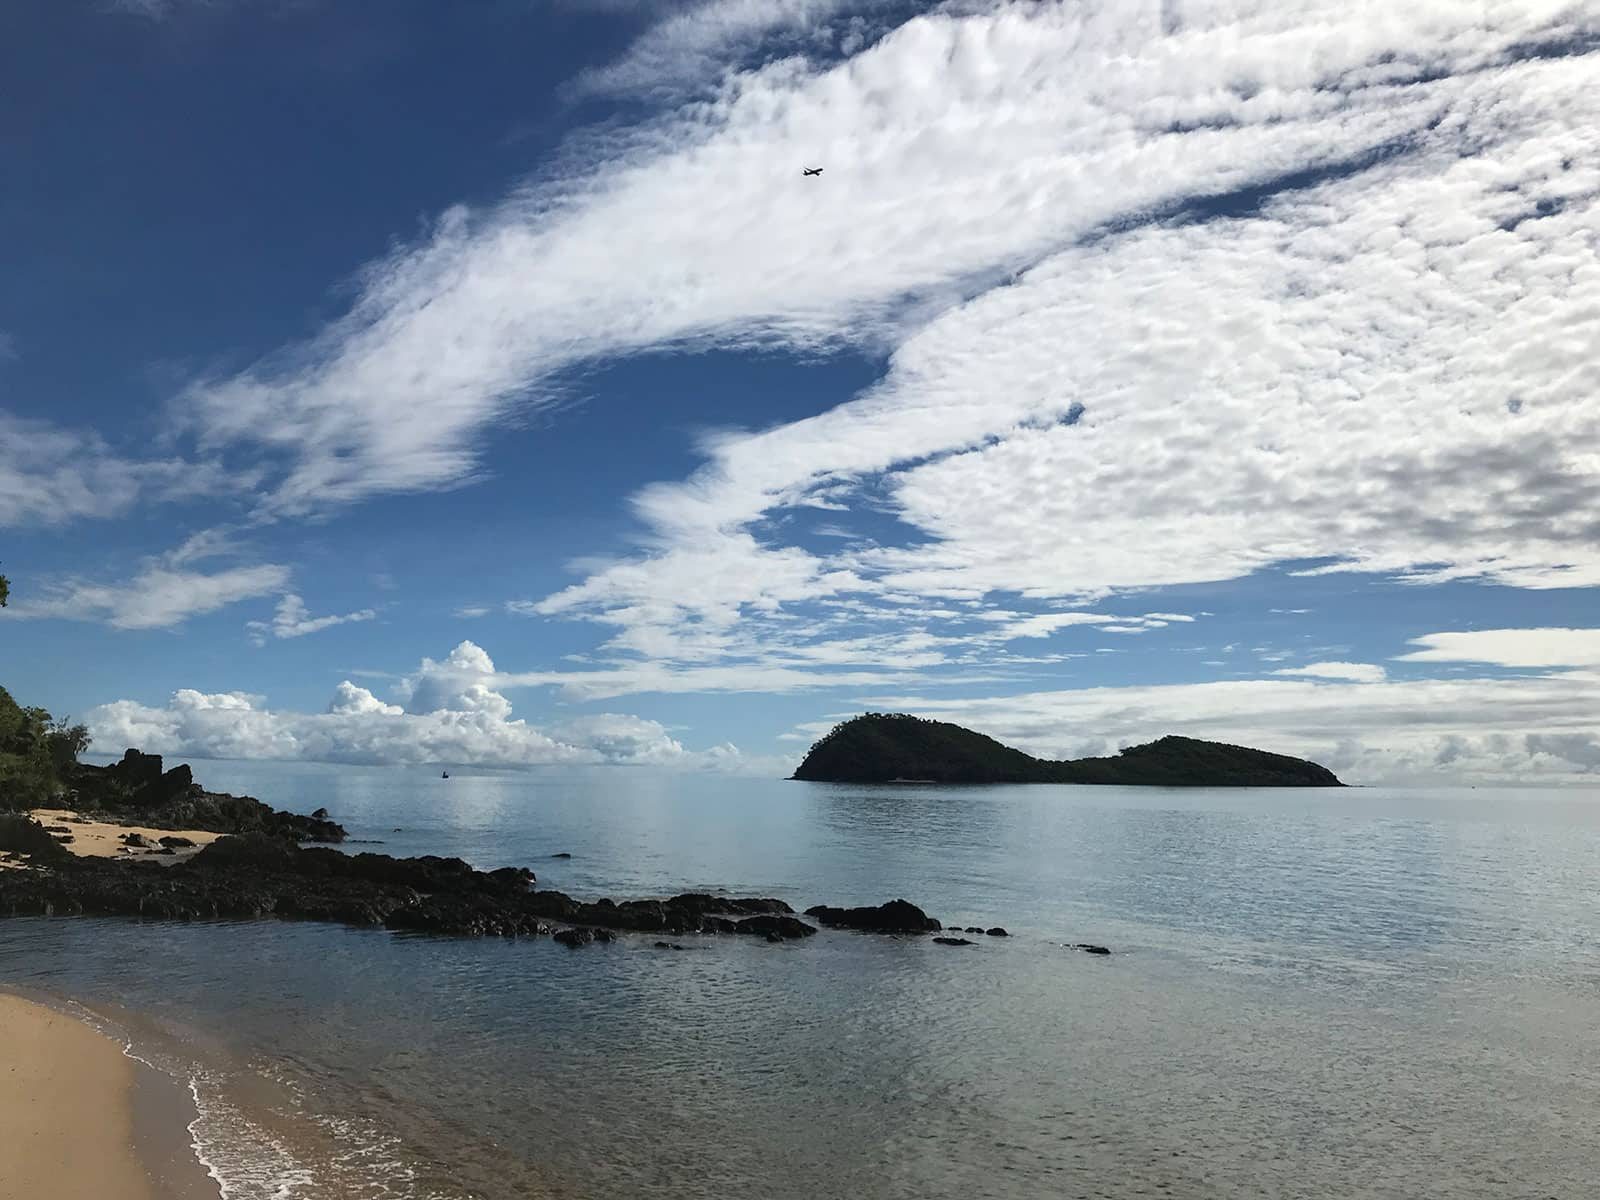 A view of the shore of a beach, with vast stretches of white clouds in the blue sky. The water by the beach is blue and there are some rocks in the shallow part of the water.